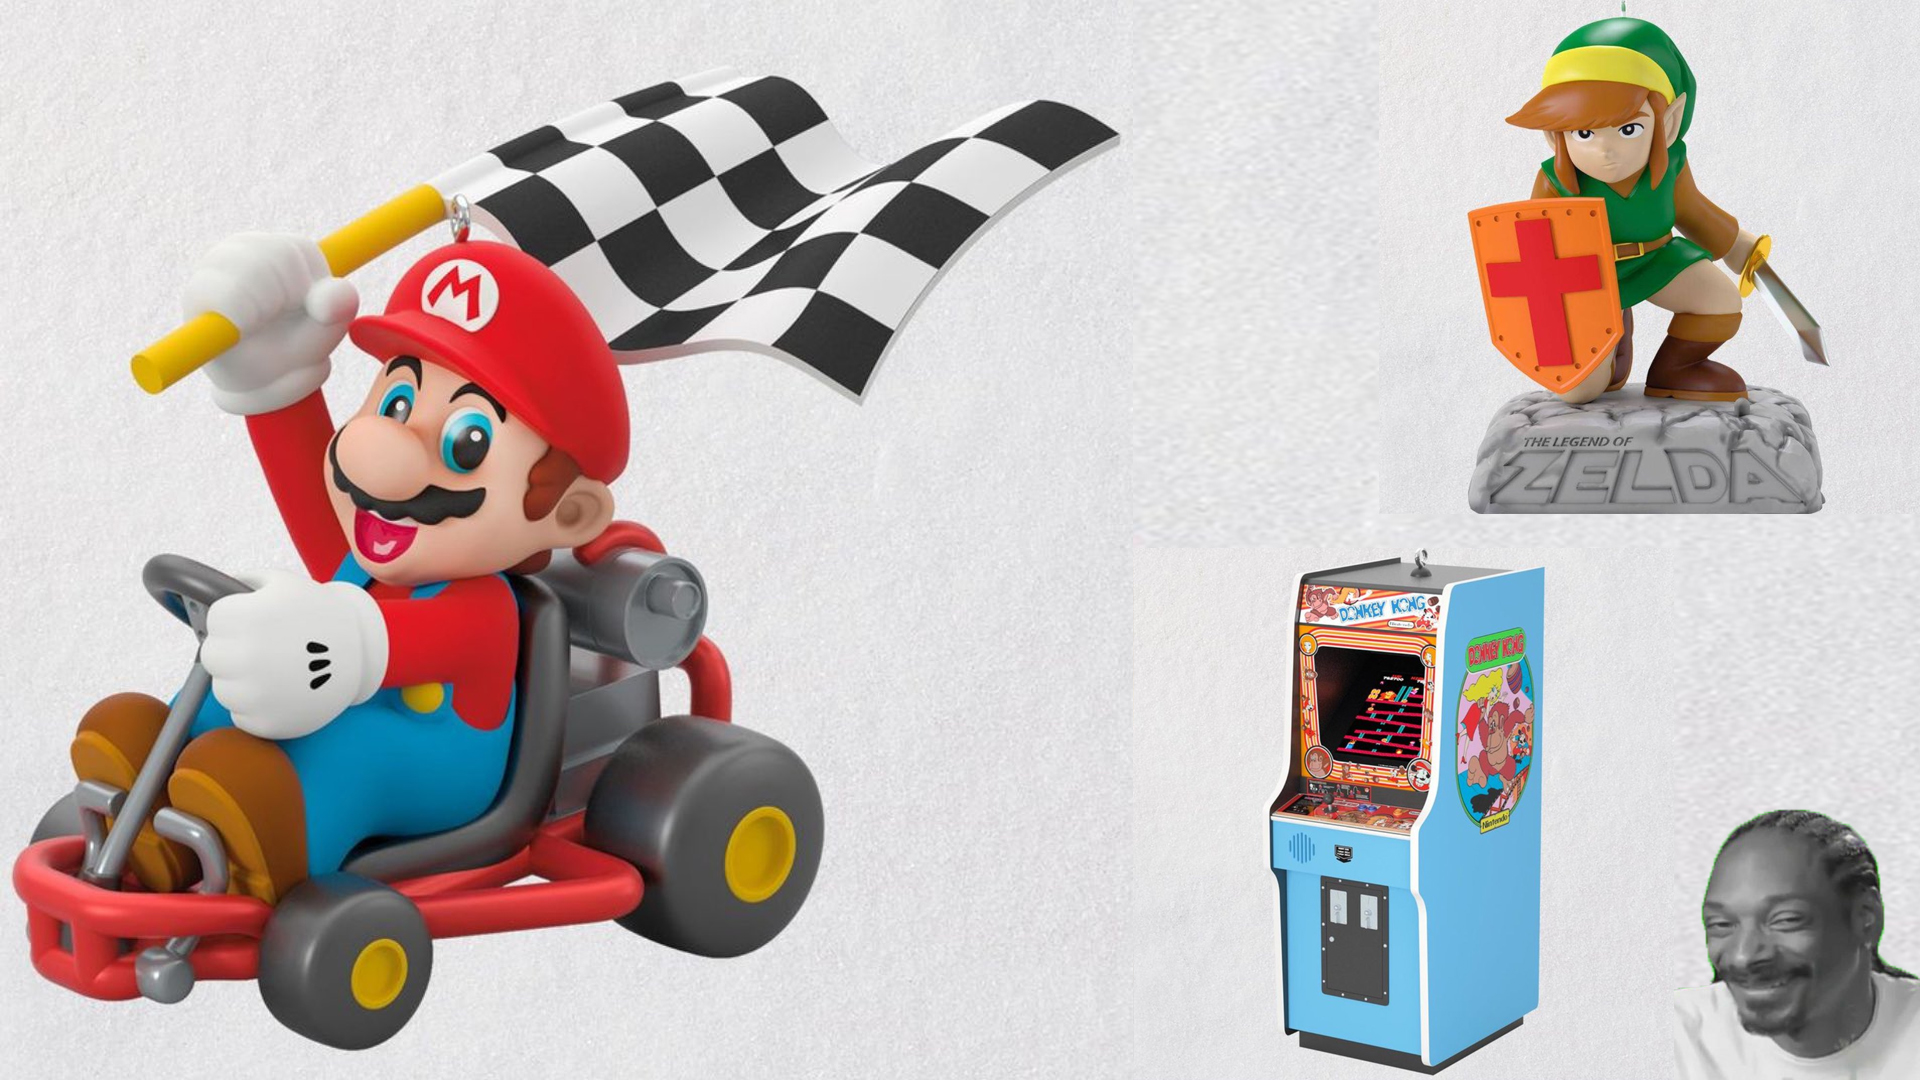 Hallmark will be selling some classic gaming ornaments this holiday